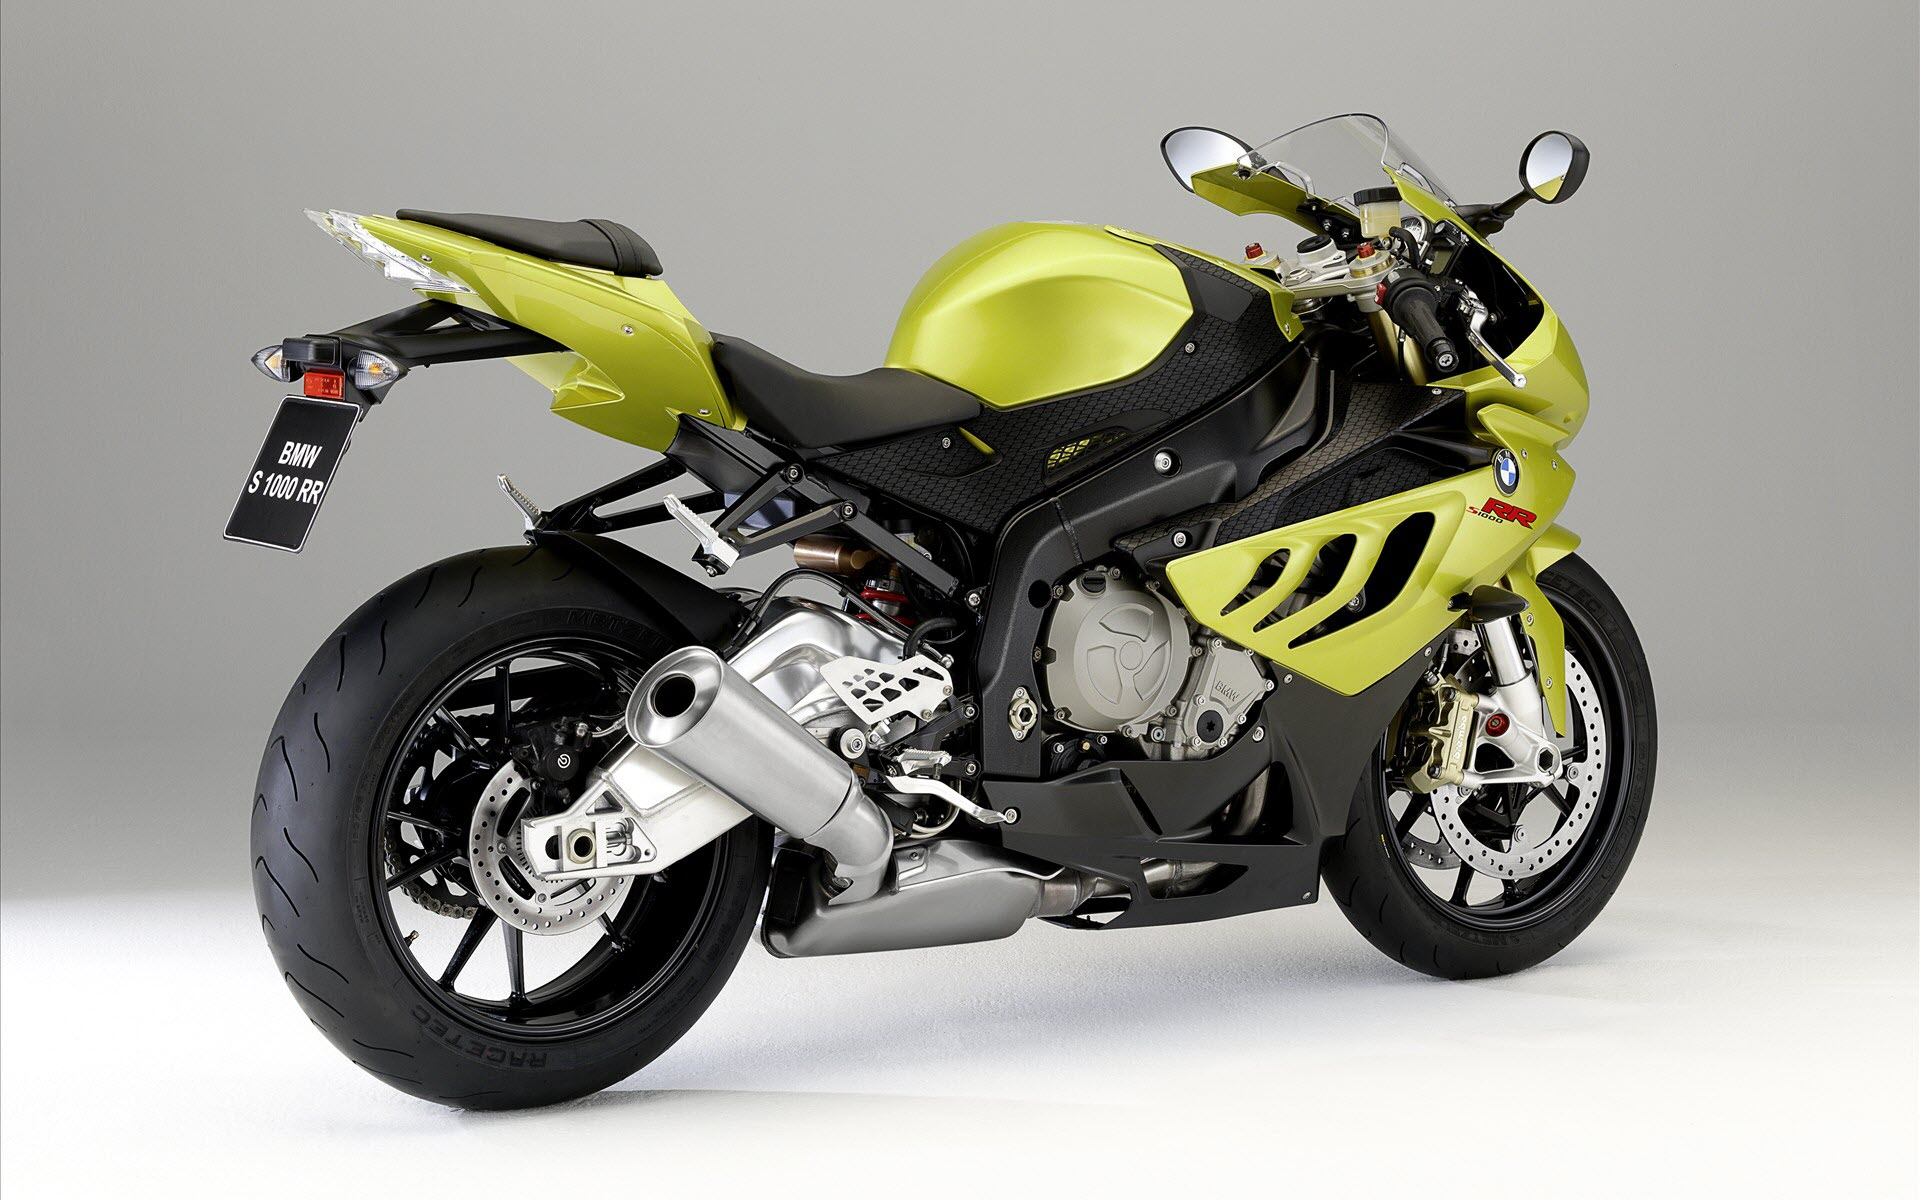 BMW 1000 RR Yellow 346.73 Kb